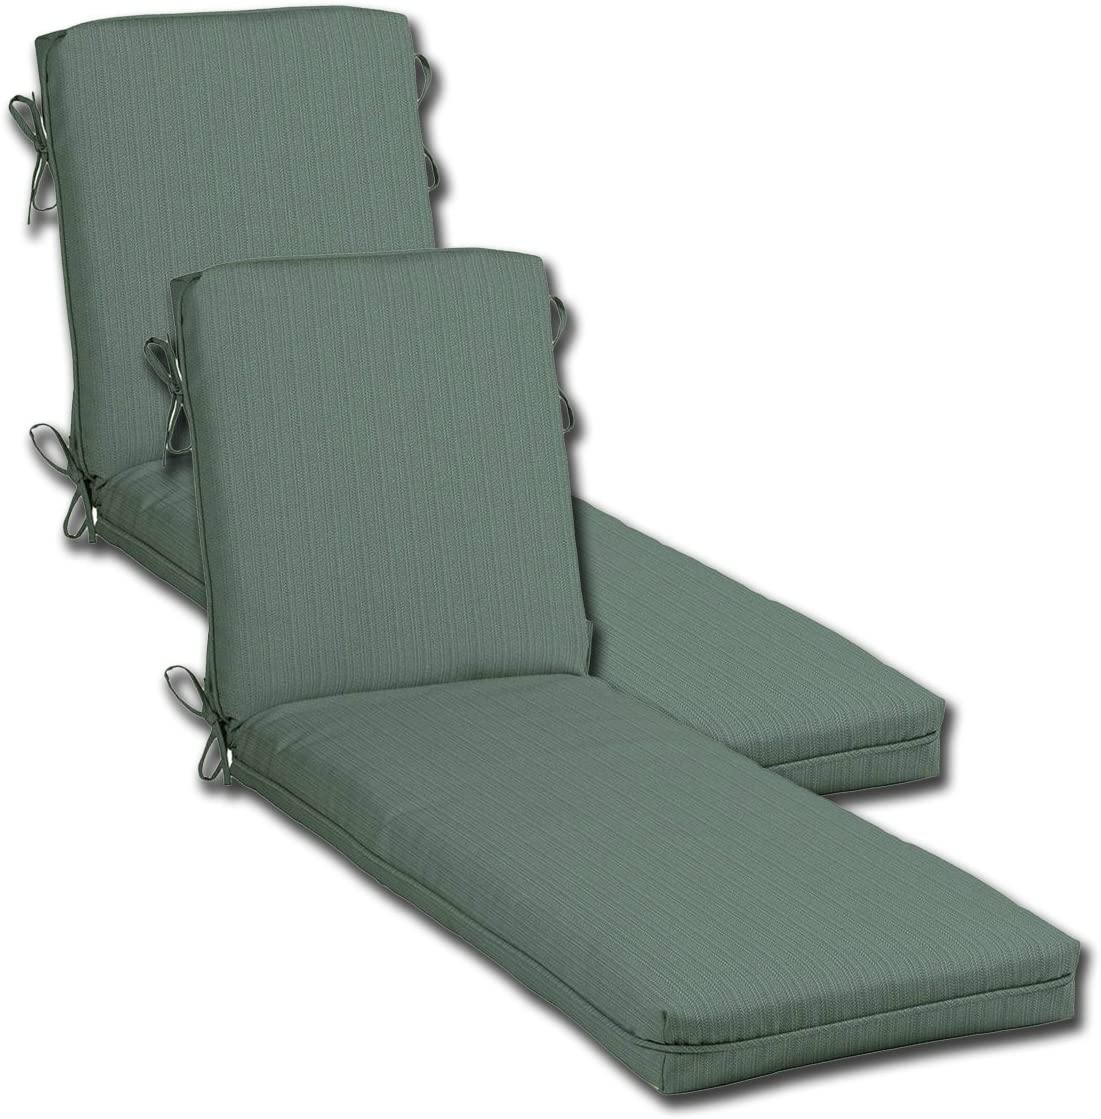 Comfort Classics Inc. Set of 2 Outdoor Patio Chaise Cushions with Single Welt, 21 W x 72 L Seat 48 Back 24 x 4 H. Polyester Fabric Blue Texture